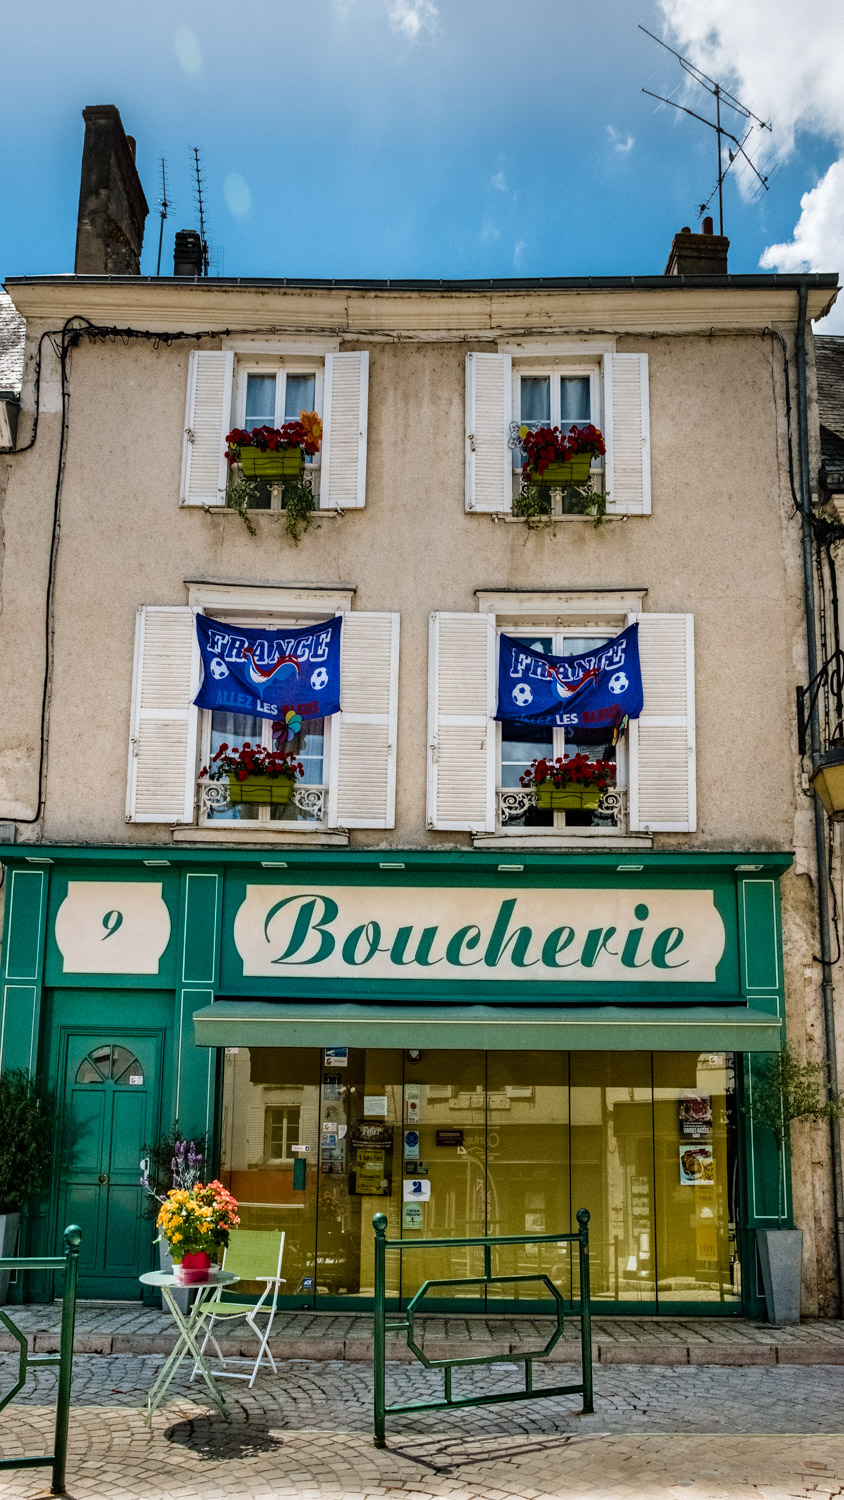 French football pride